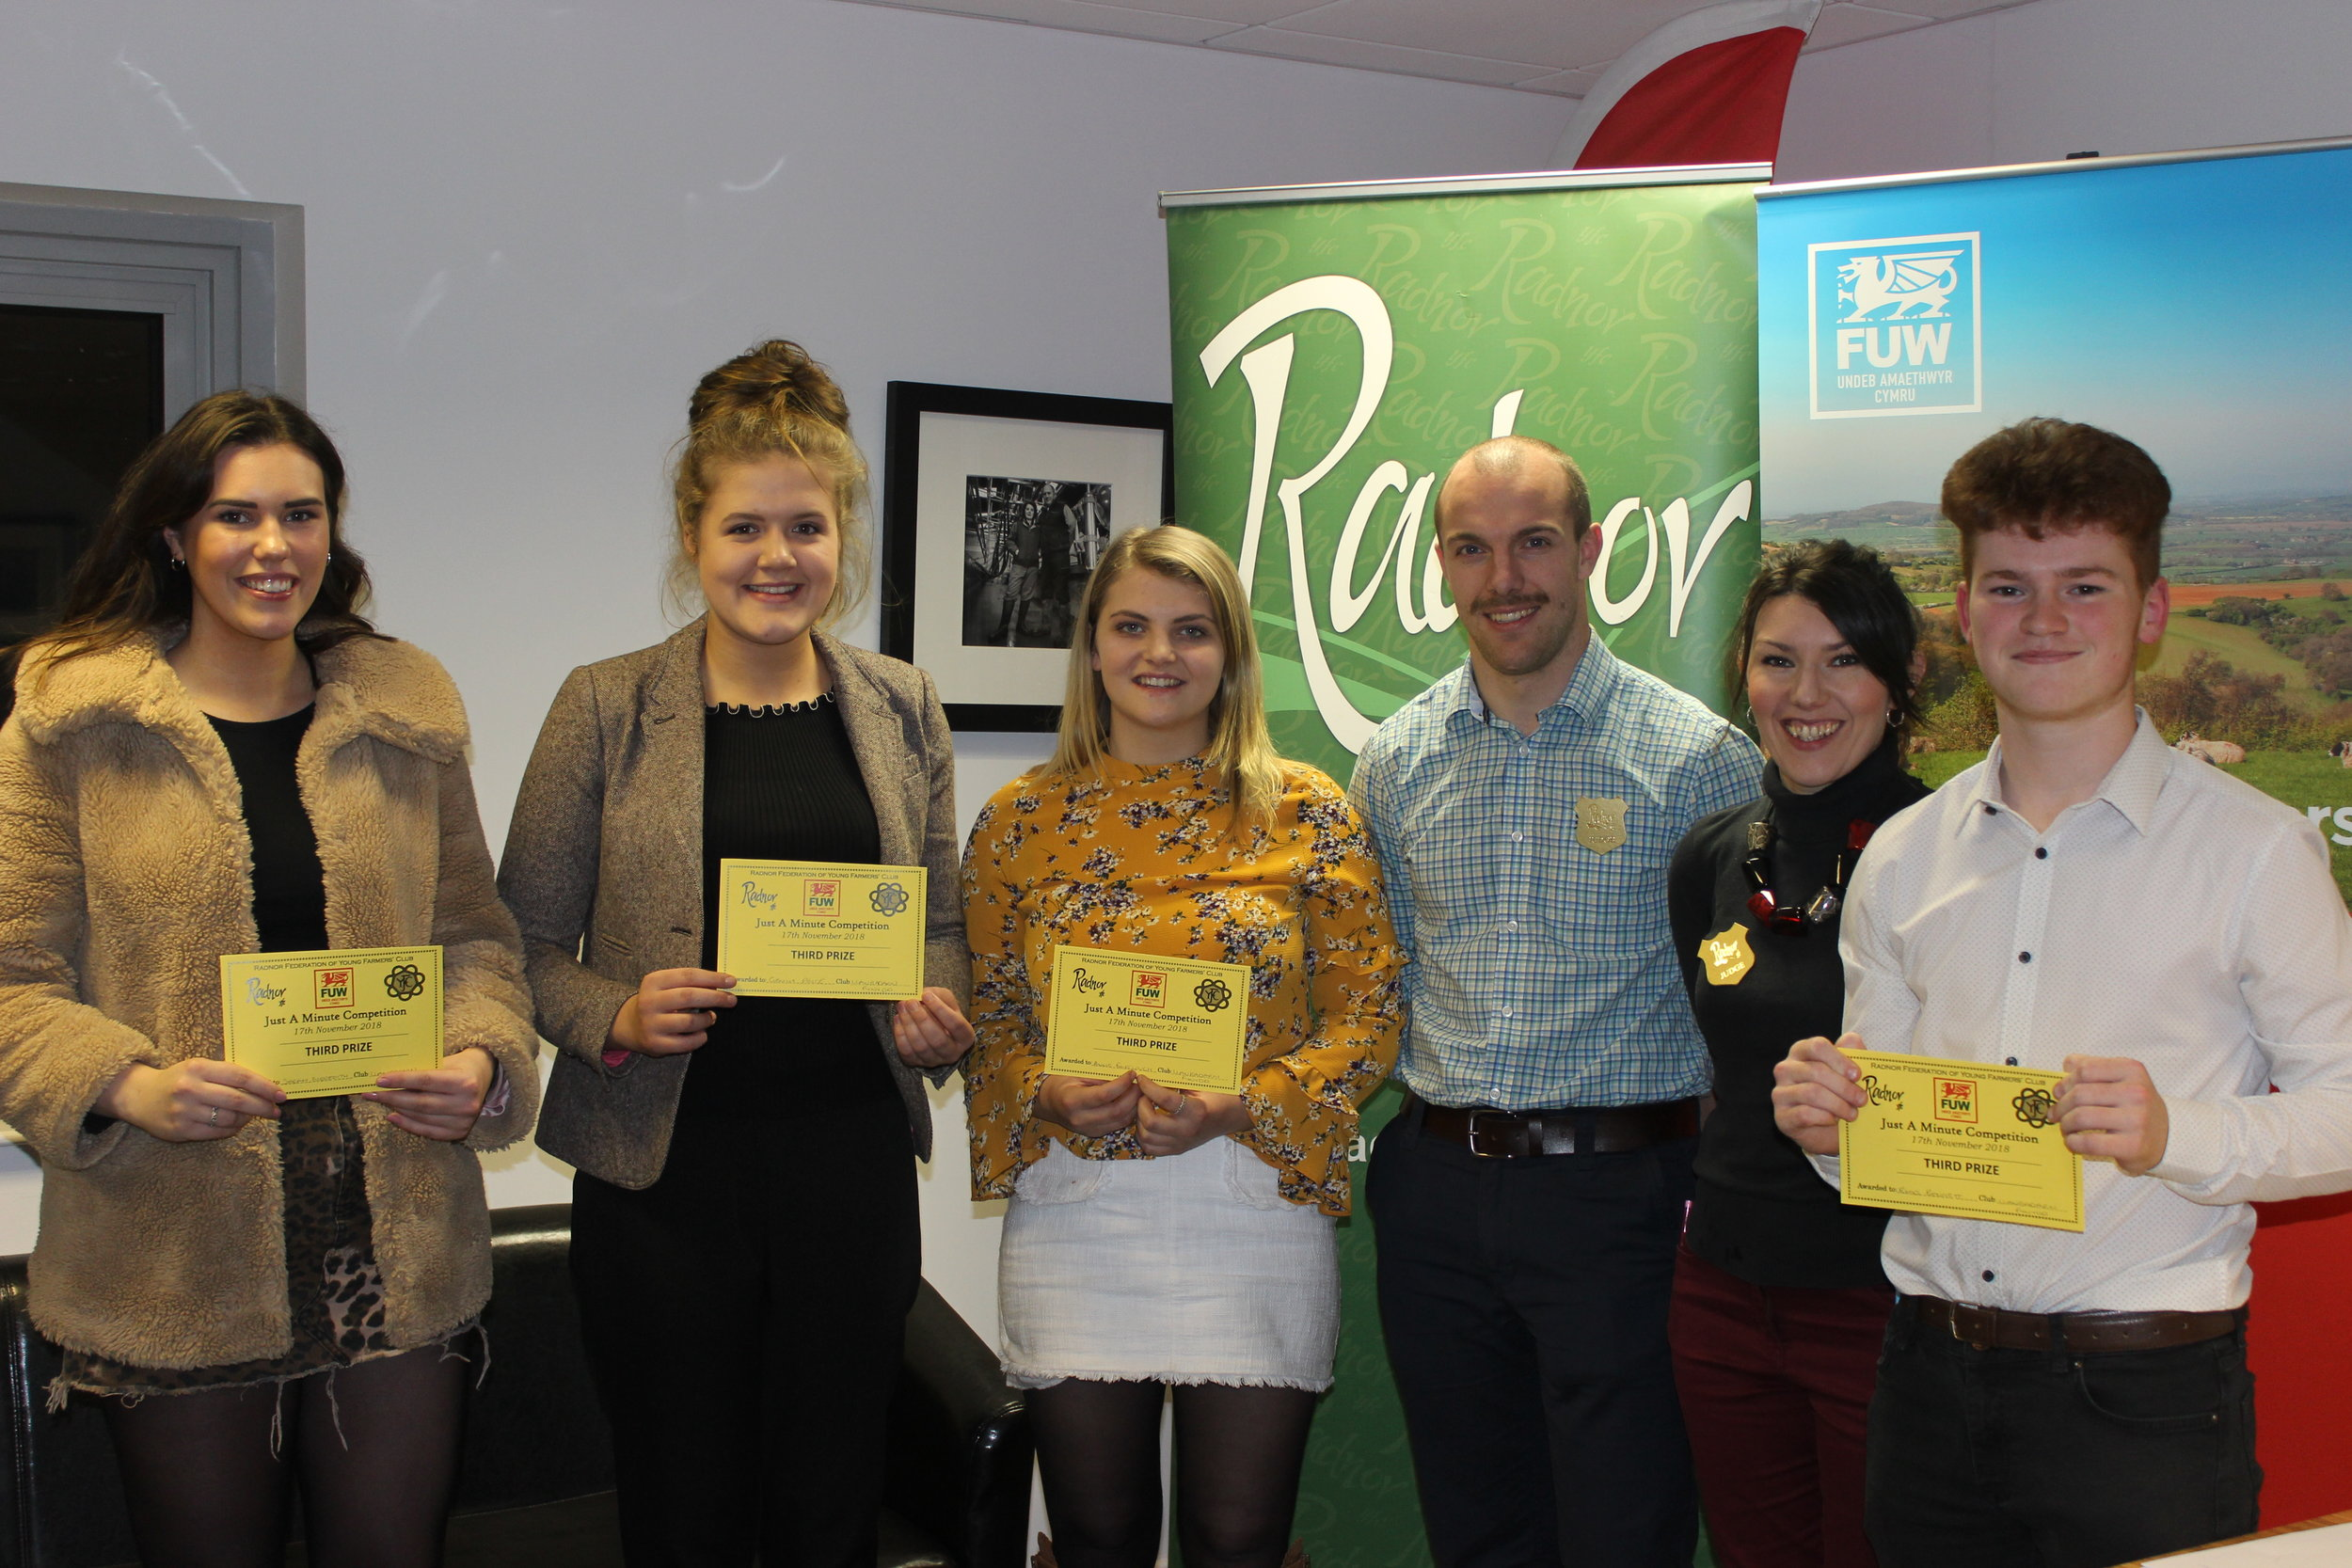 Sarah Meredith, Gemma Price, Annie Fairclough & Rhys Bennett gaining 3rd place in the Just A Minute competition with judges Mark Davies & Katie Davies.